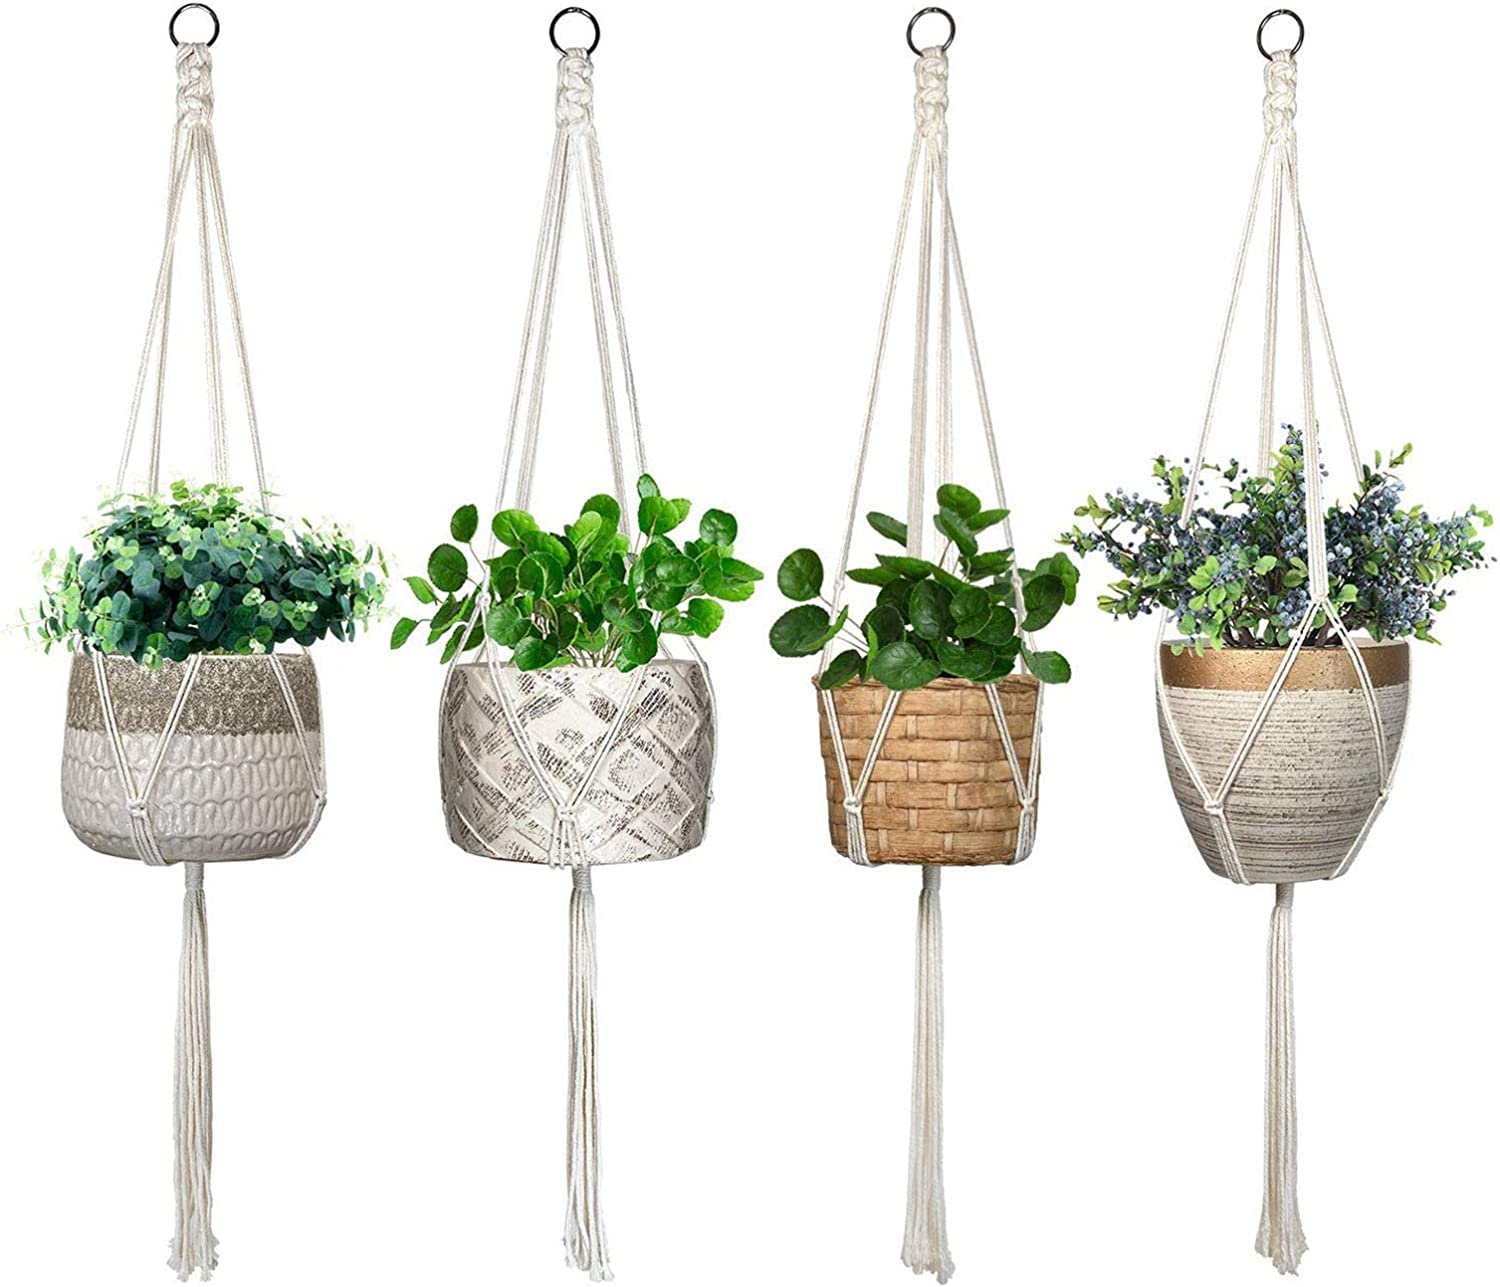 4Pcs Macrame Rope Plant Hanger Basket Flower Pot Hanging Holder Garden Decor US~